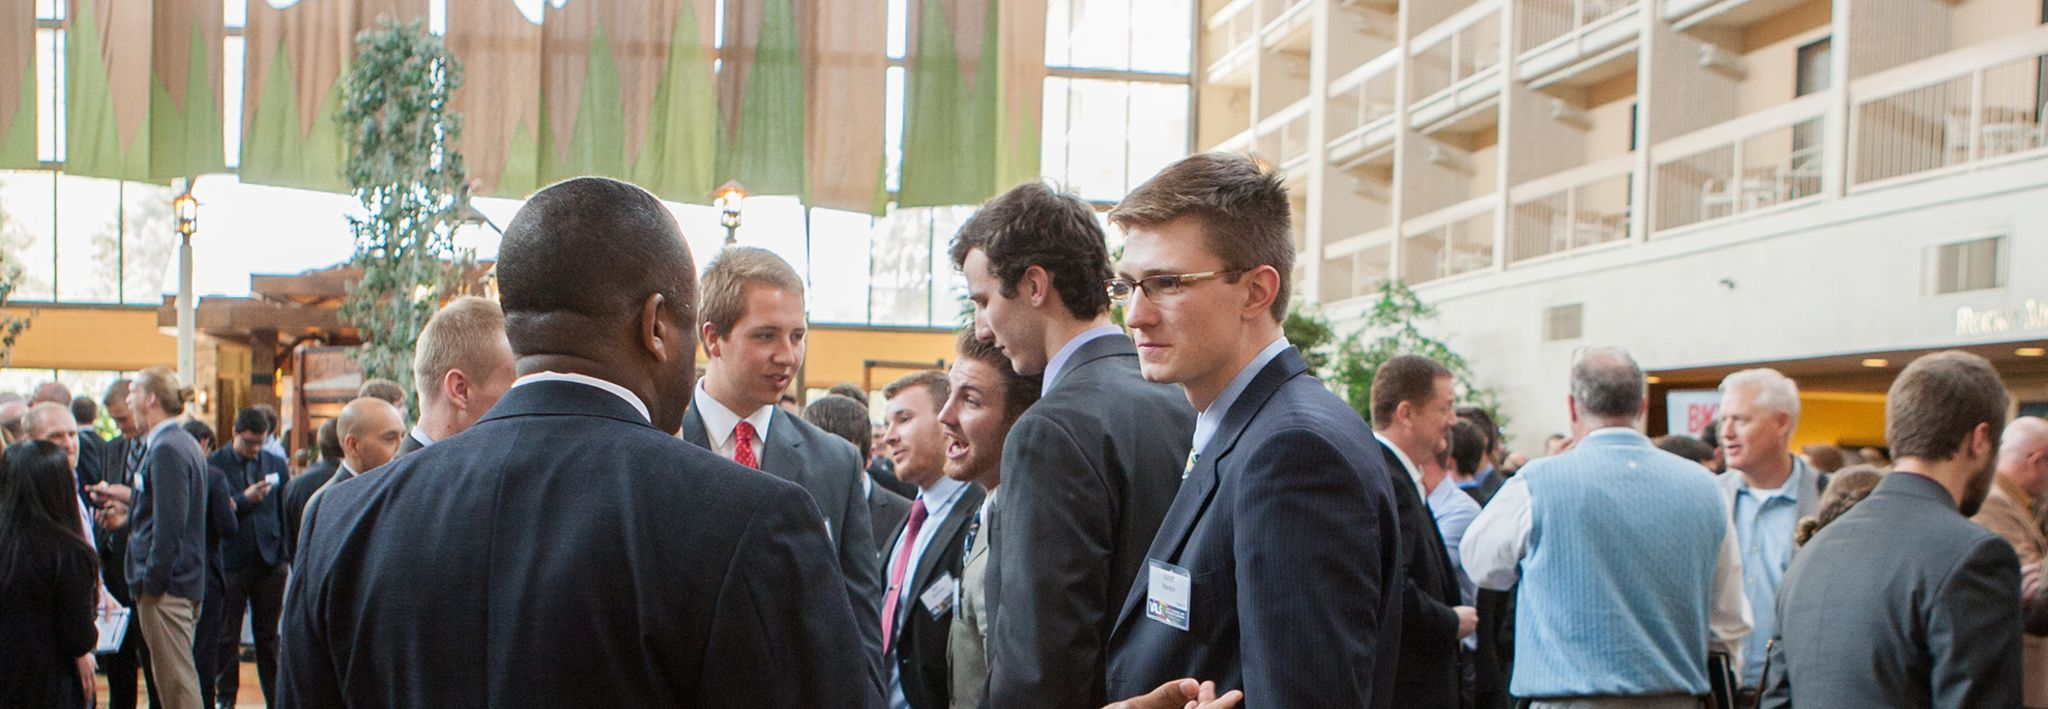 CCU student networking with a business professional at VALS event.